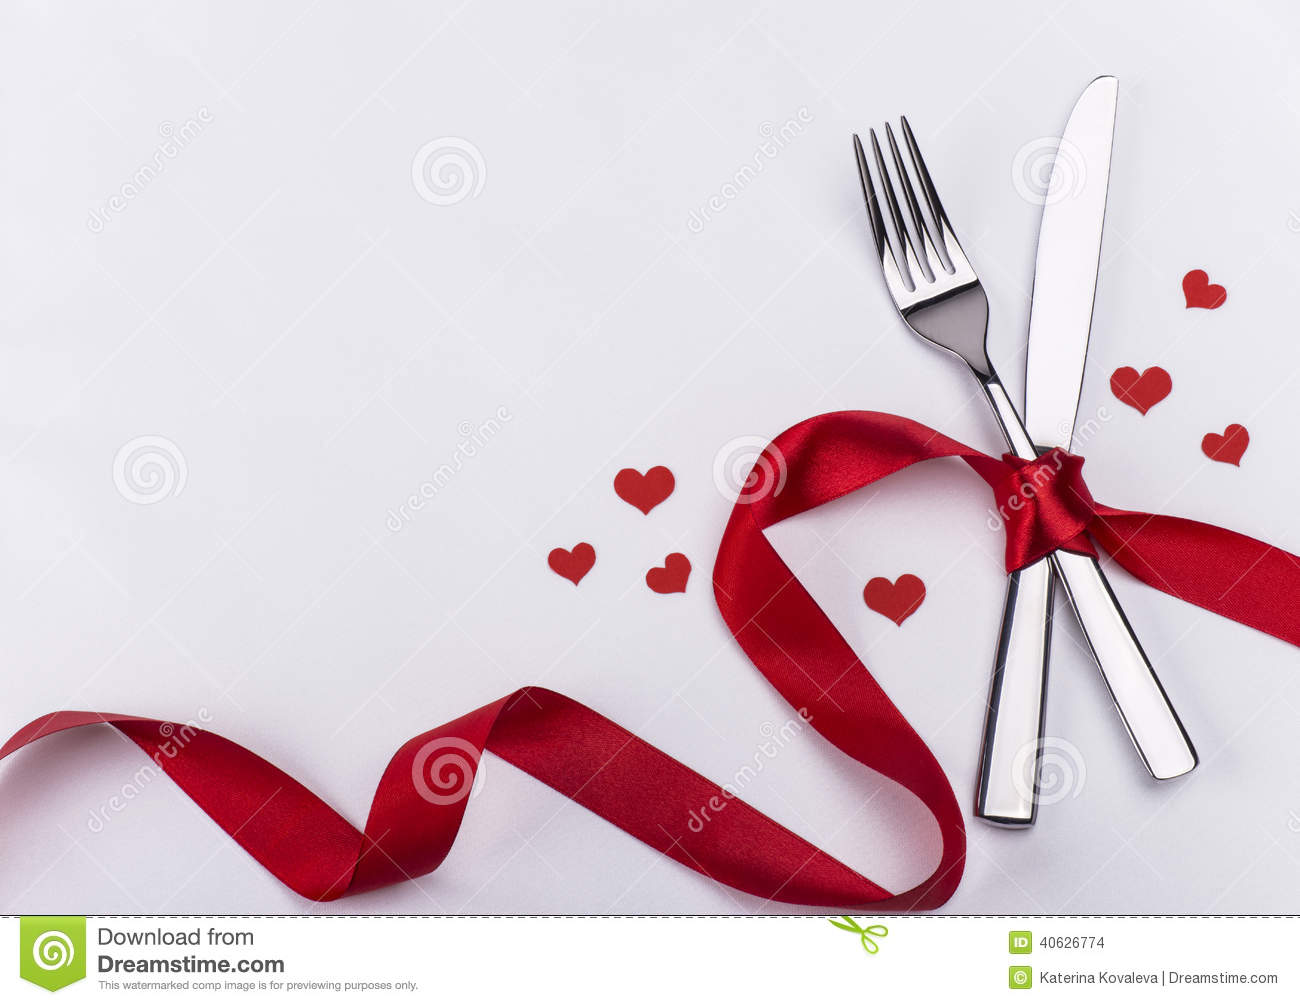 Fork And Knife For Wedding Celebration Background Stock Photo - Image: 40626774